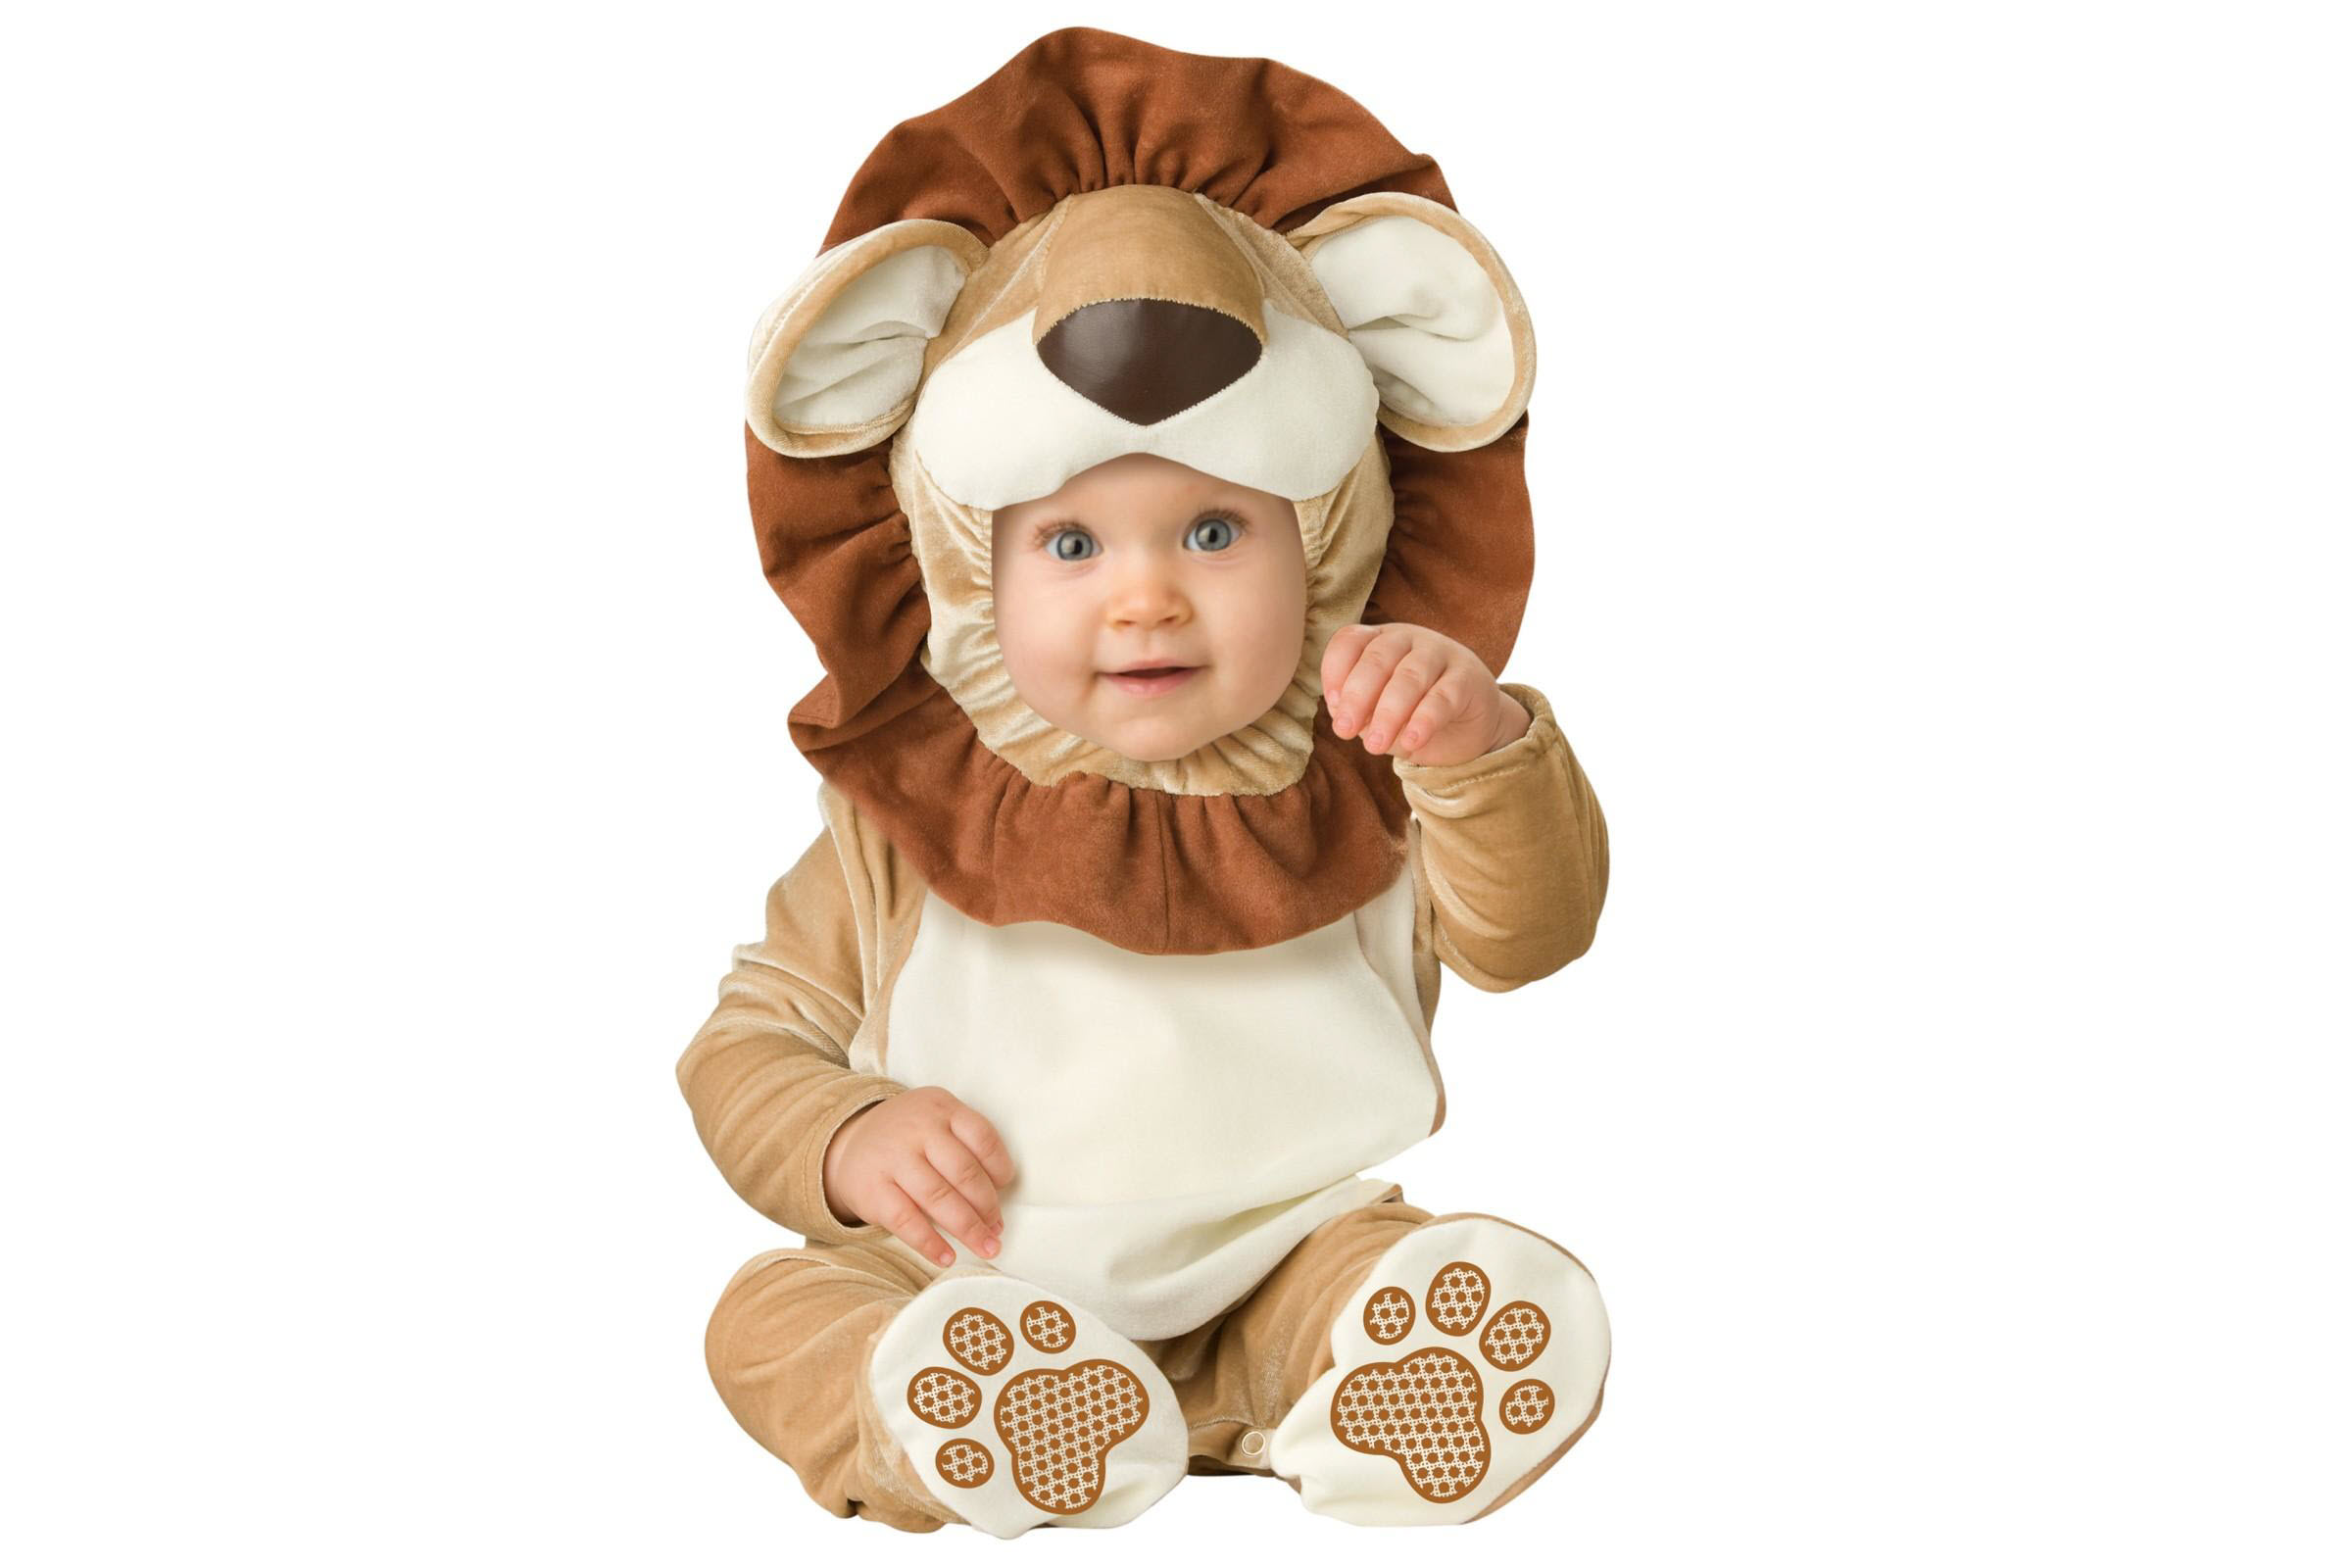 Look spooktacular this Halloween!  sc 1 st  ParentMap & Spooktacular Halloween Costumes for Babies Toddlers and the Big ...